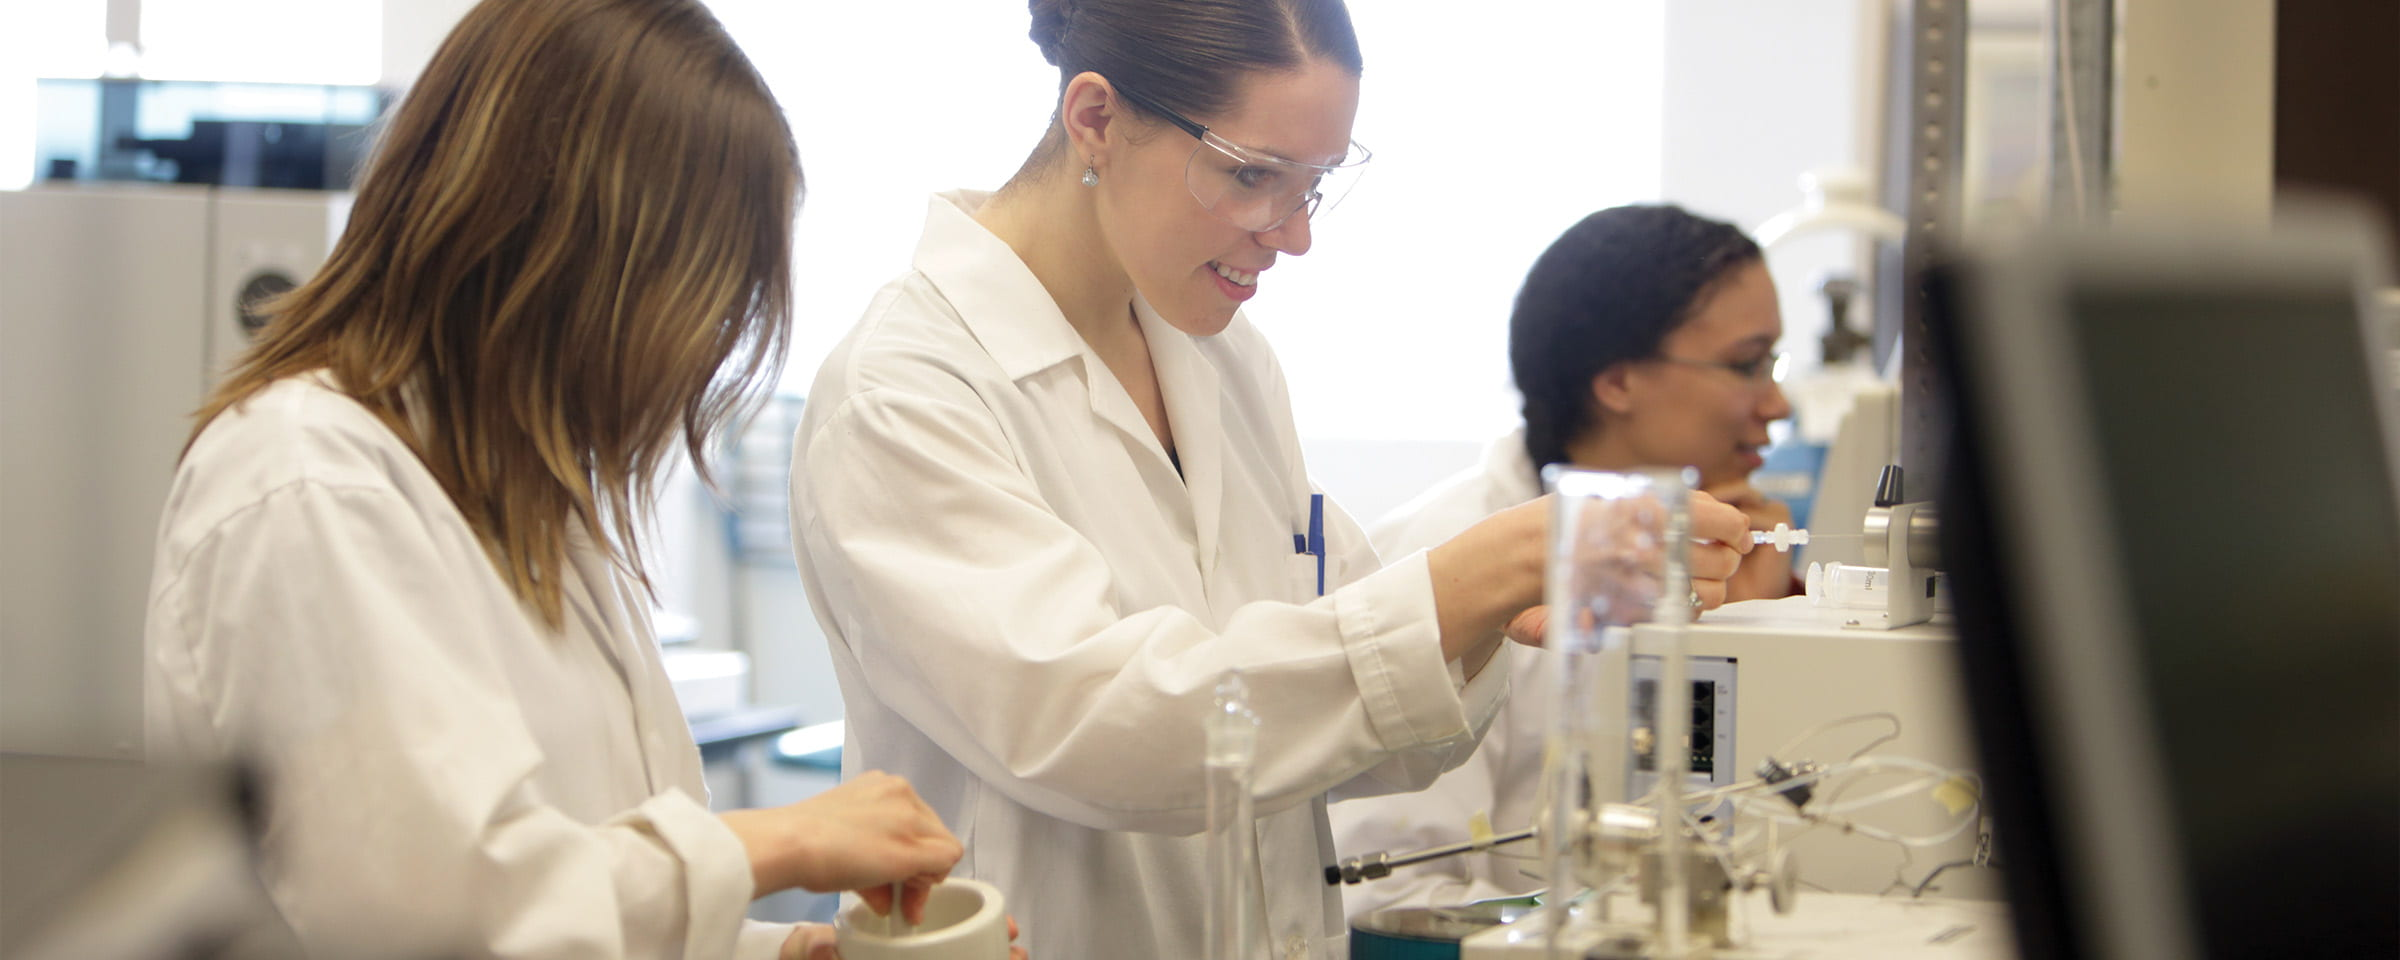 Three female students in health sciences lab